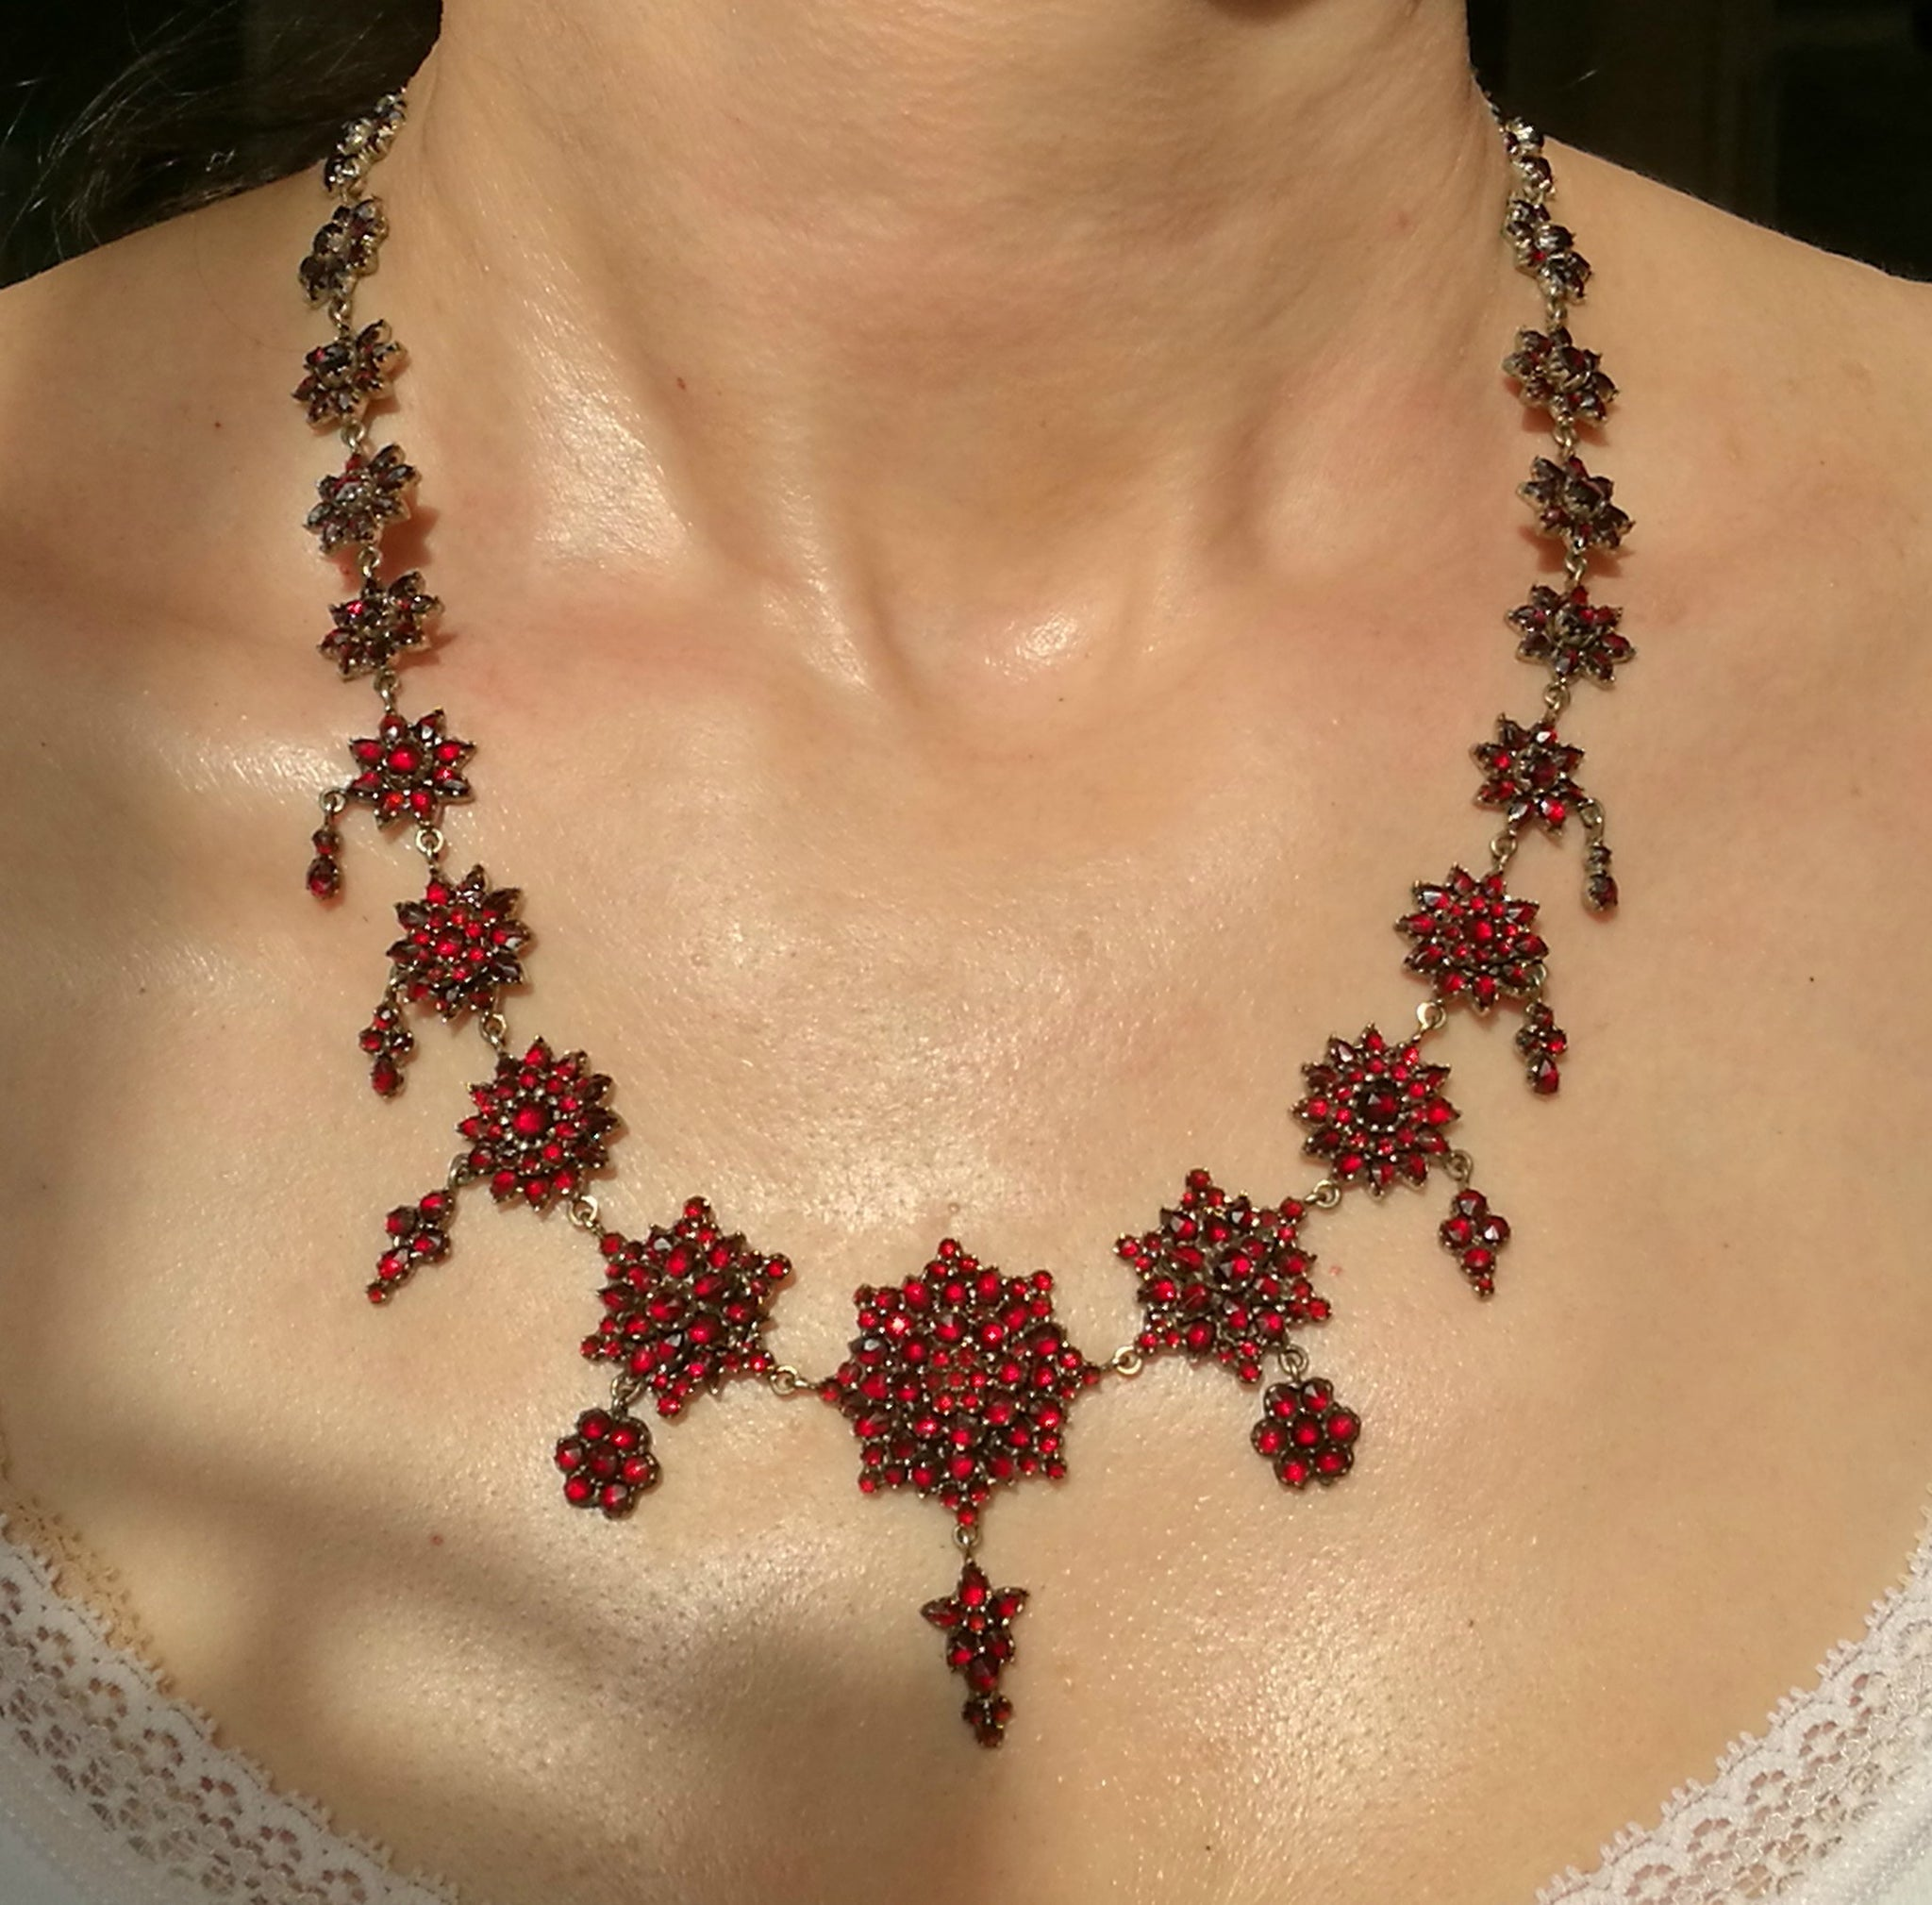 Victorian Antique Bohemian 1890s Garnet Necklace, 19 inch